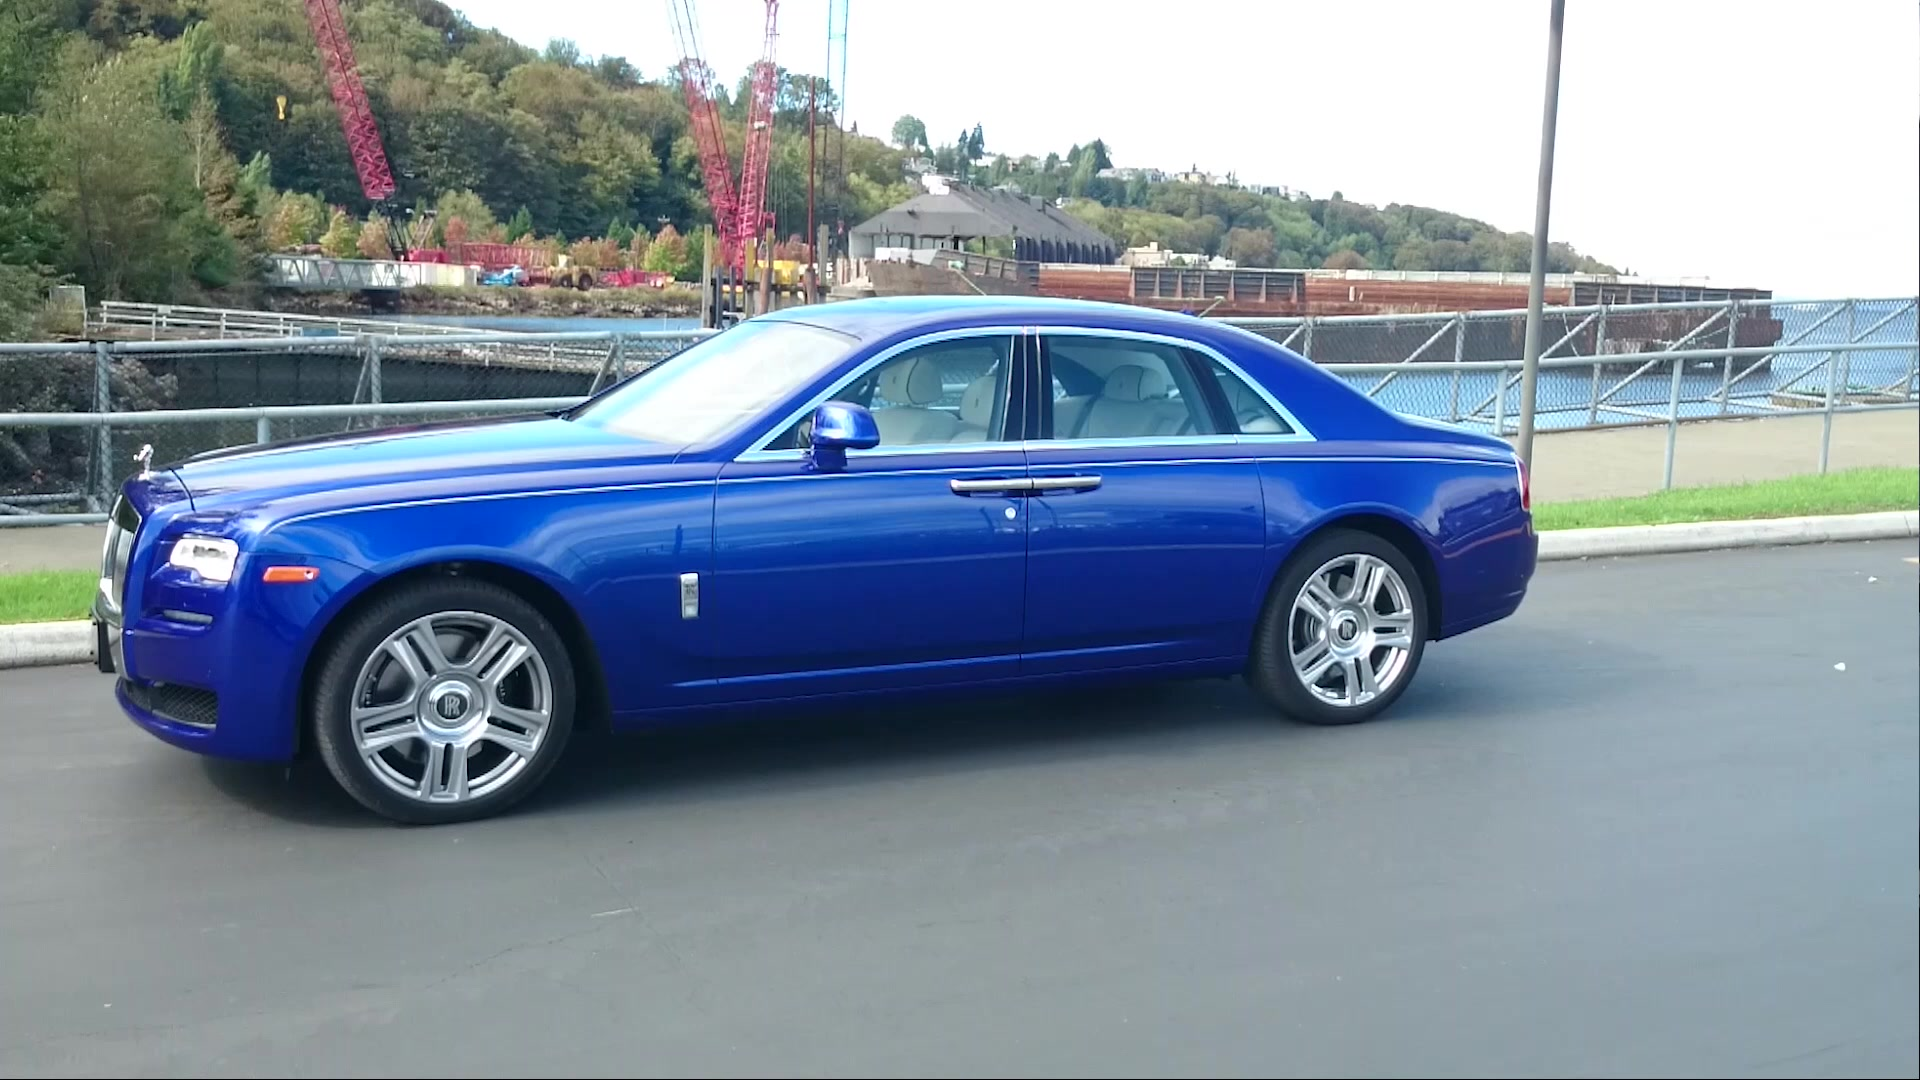 2015 Rolls-Royce Ghost | Daily Driver